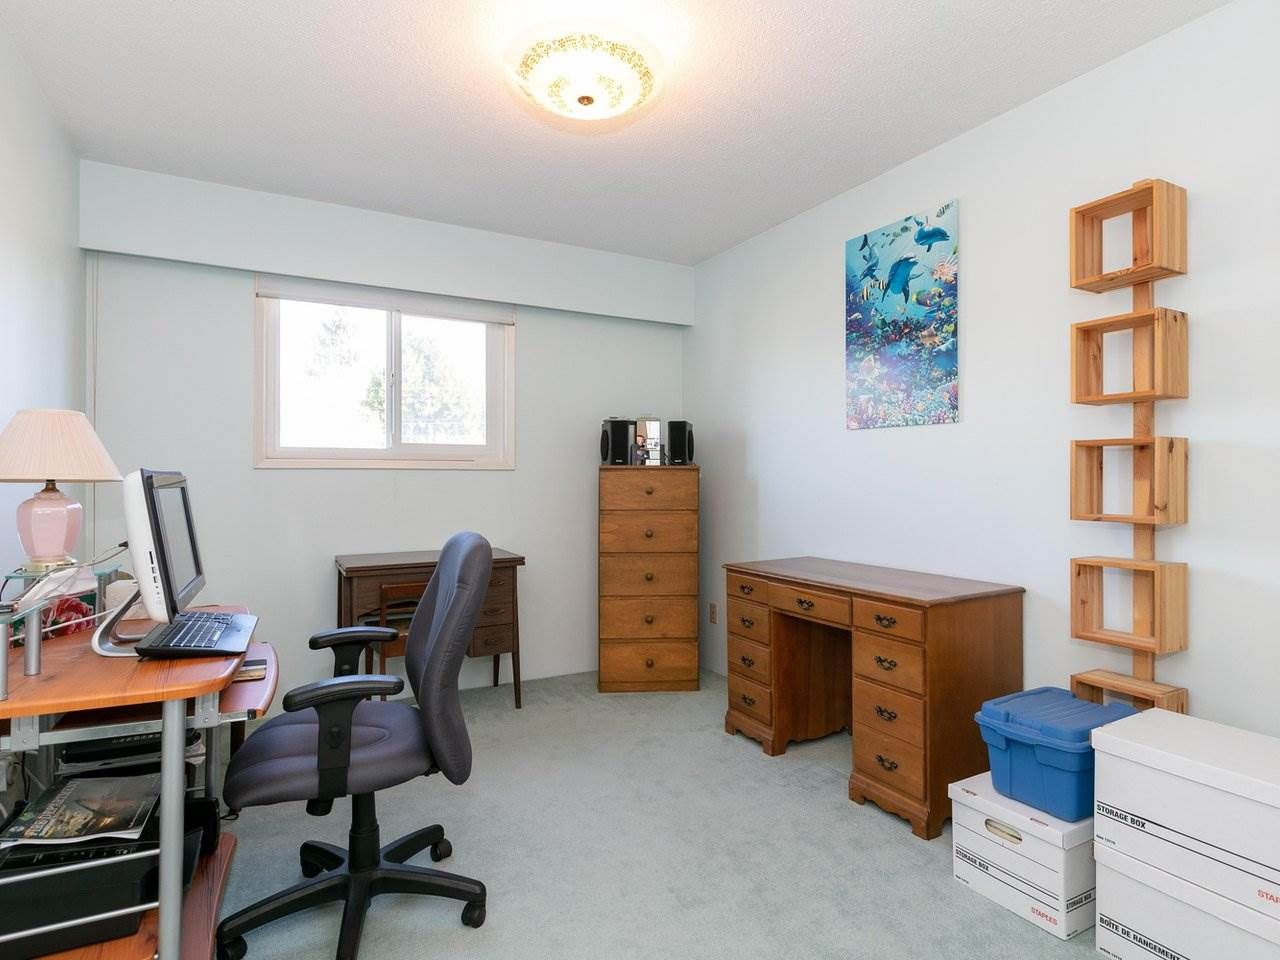 Photo 18: Photos: 1422 GROVER Avenue in Coquitlam: Central Coquitlam House for sale : MLS®# R2568207